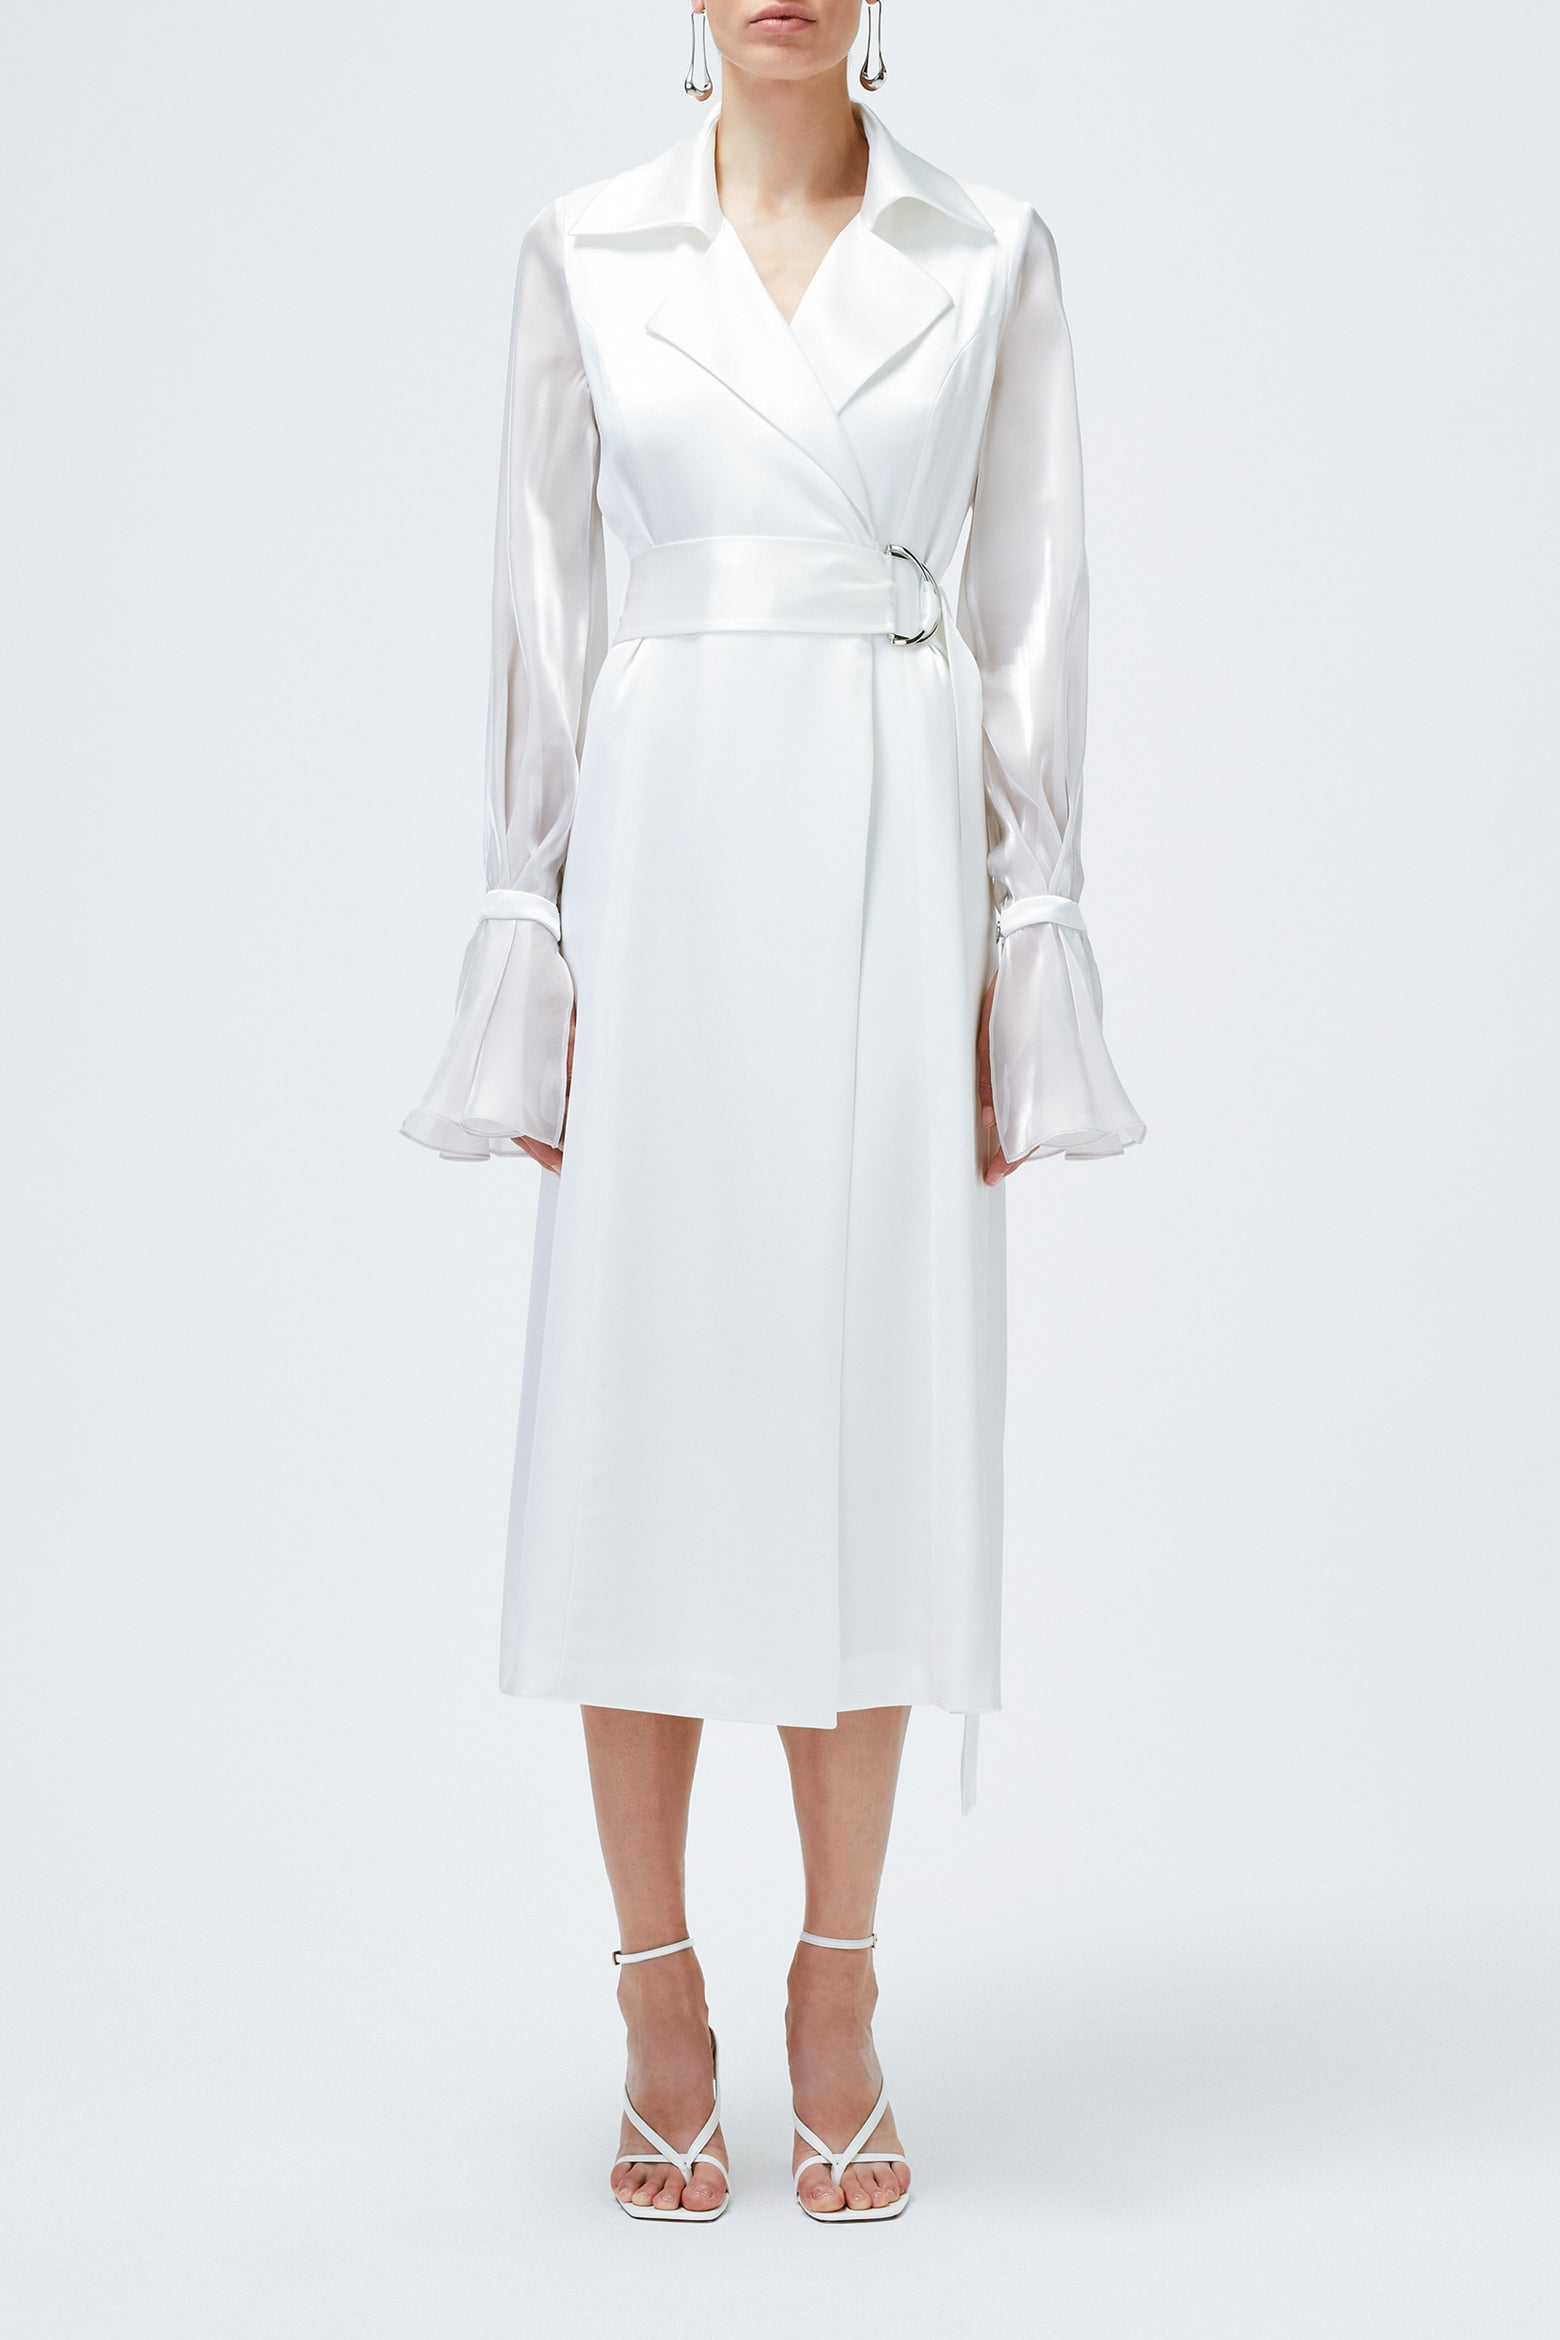 Organza Trench Dress - White